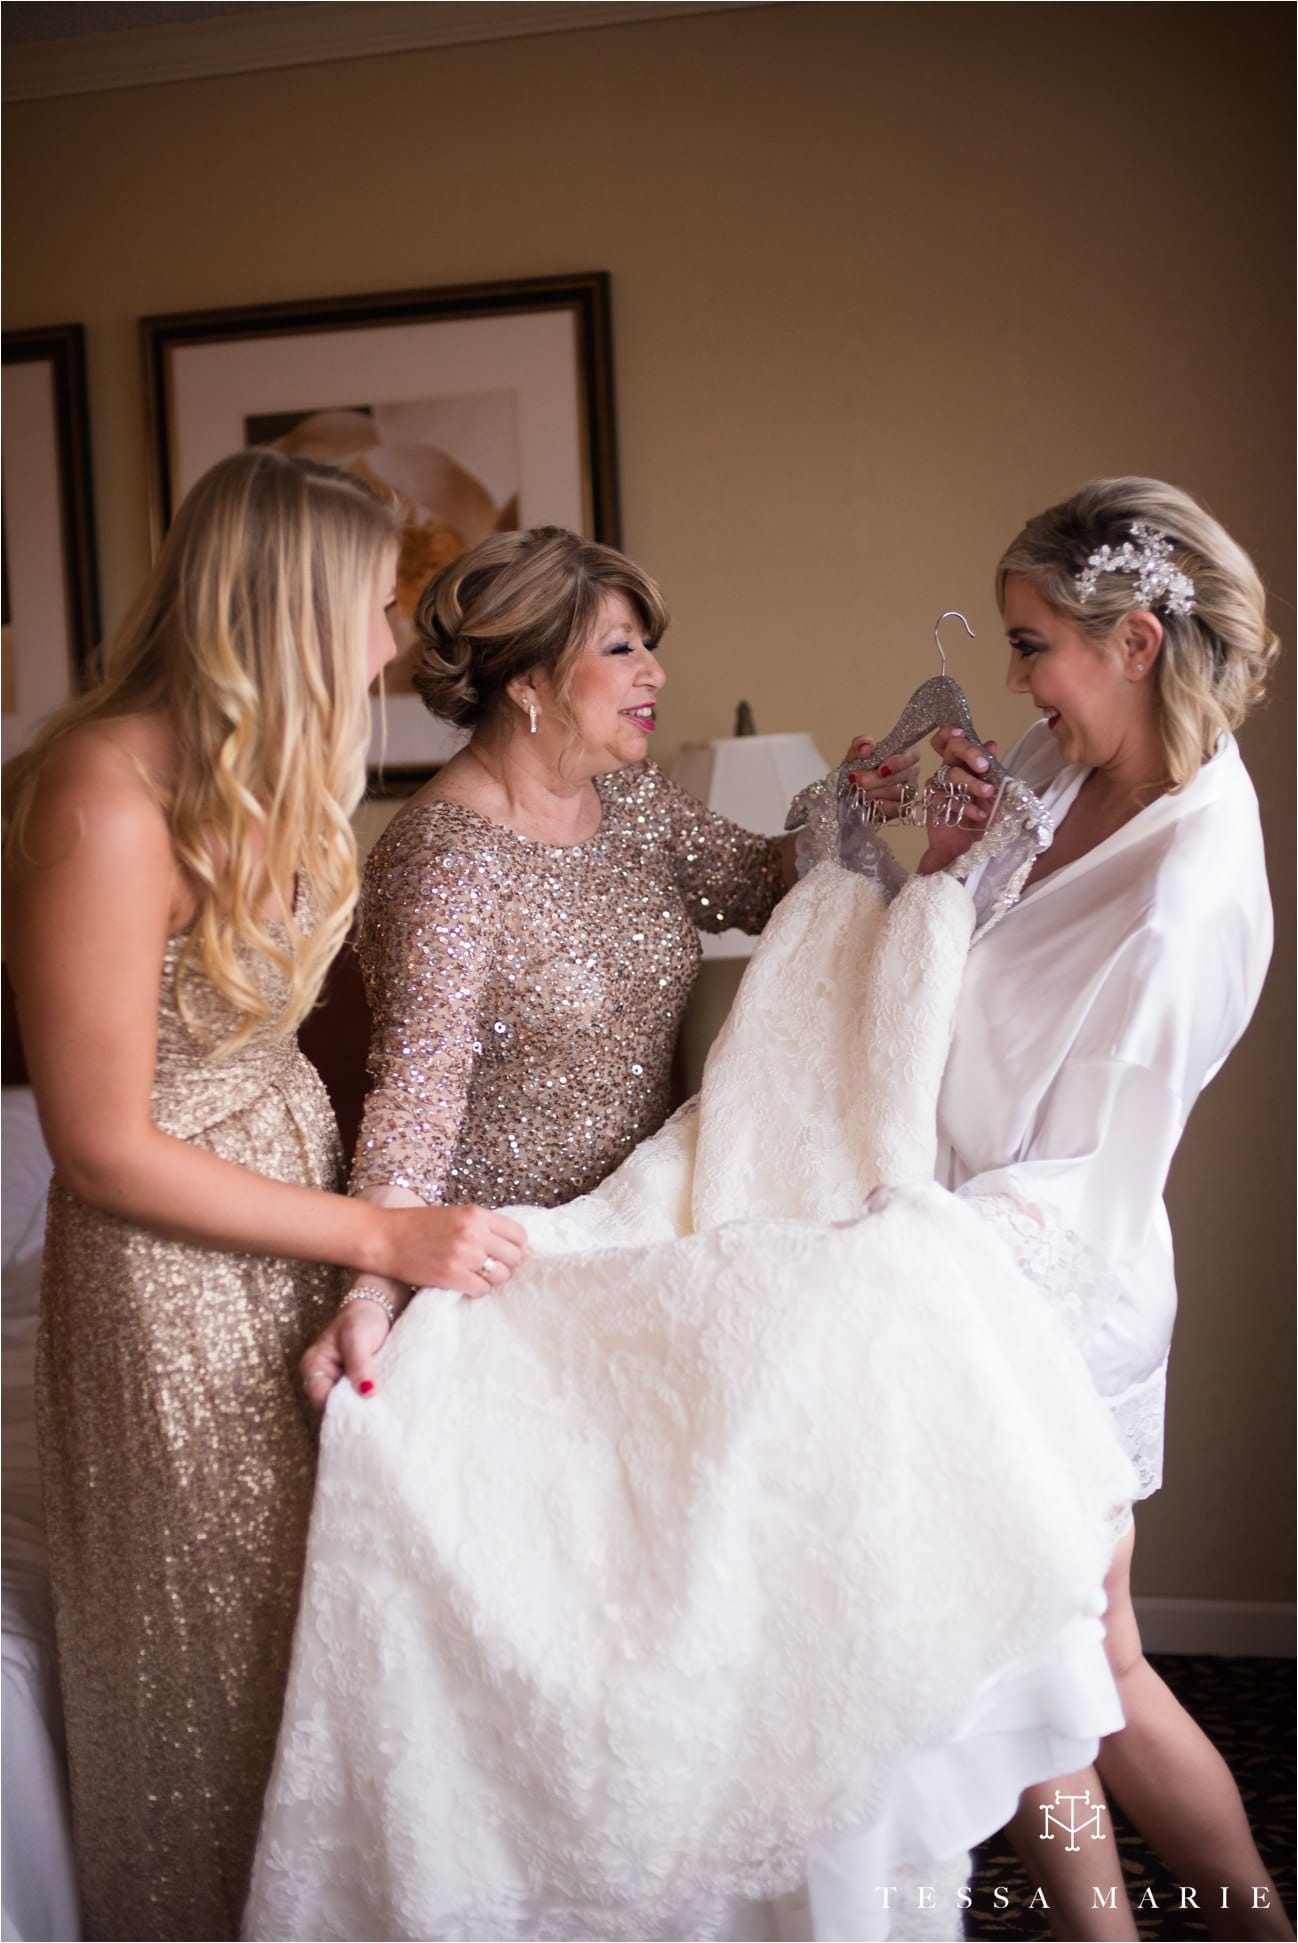 tessa_marie_brickyard_marietta_new_years_wedding_pictures_candid_emotional_wedding_portraits_0024